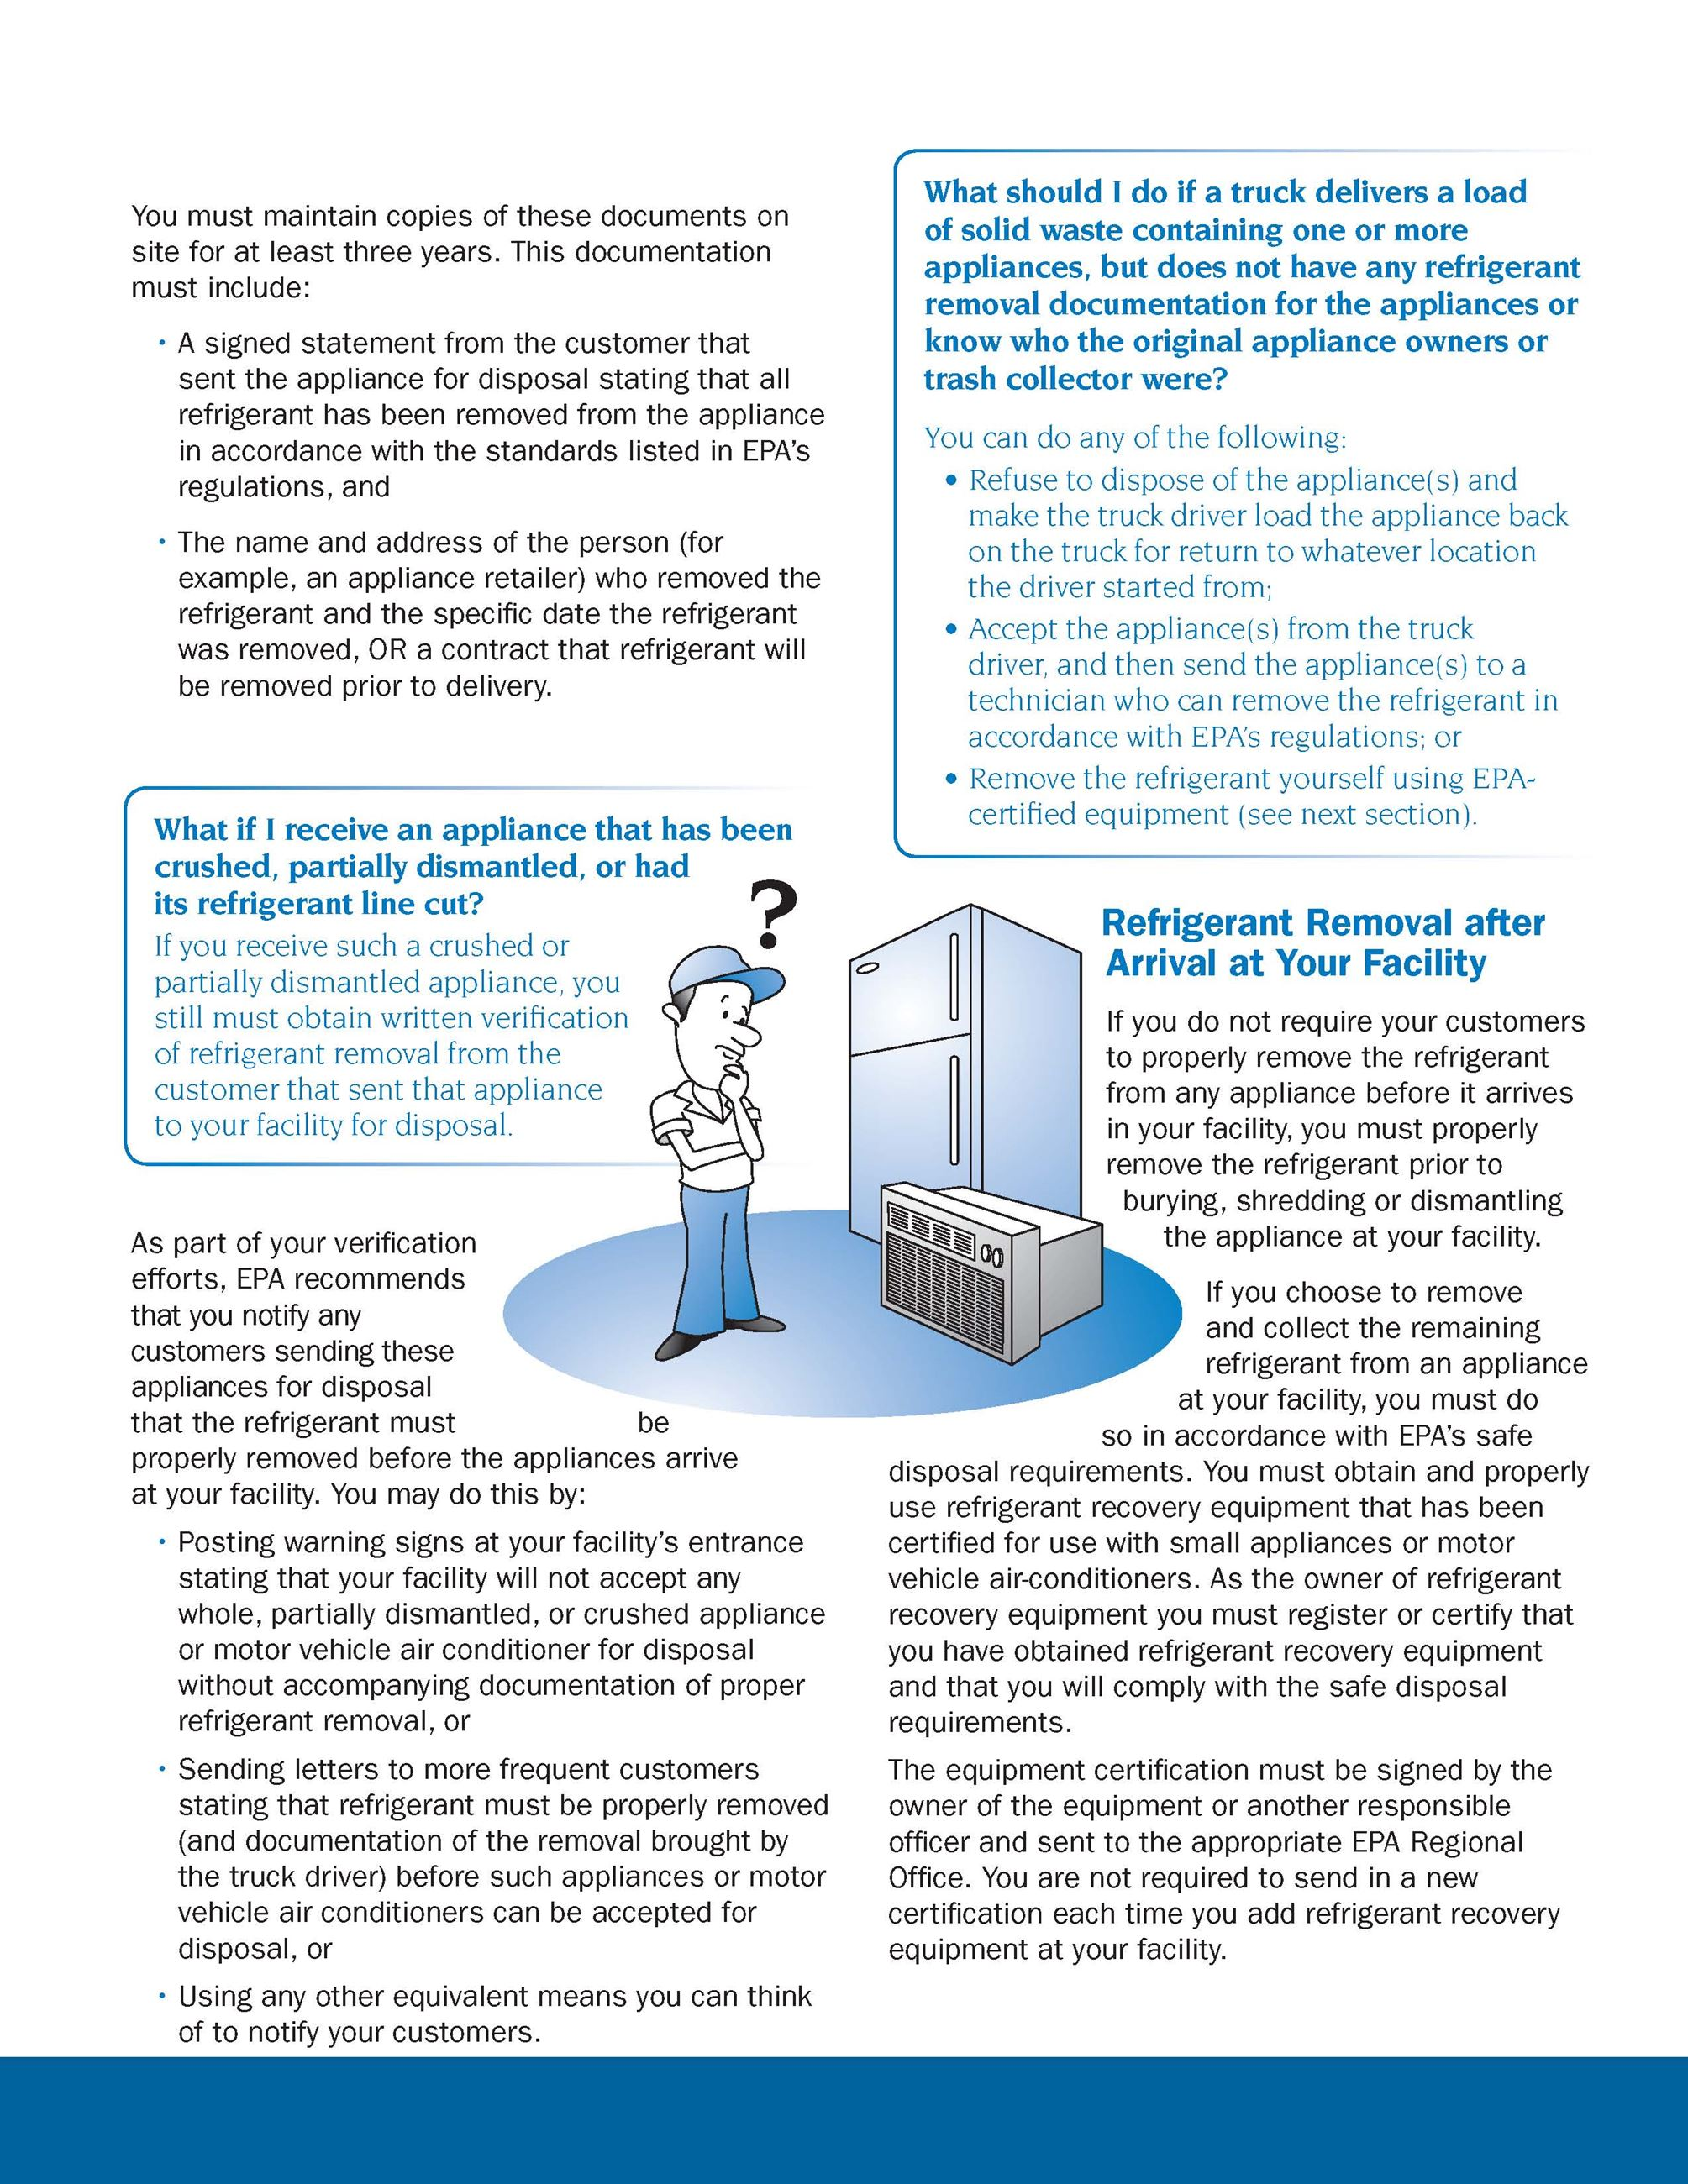 safe_disposal_procedures_for_household_appliances_that_use_refrigerants_Page_2